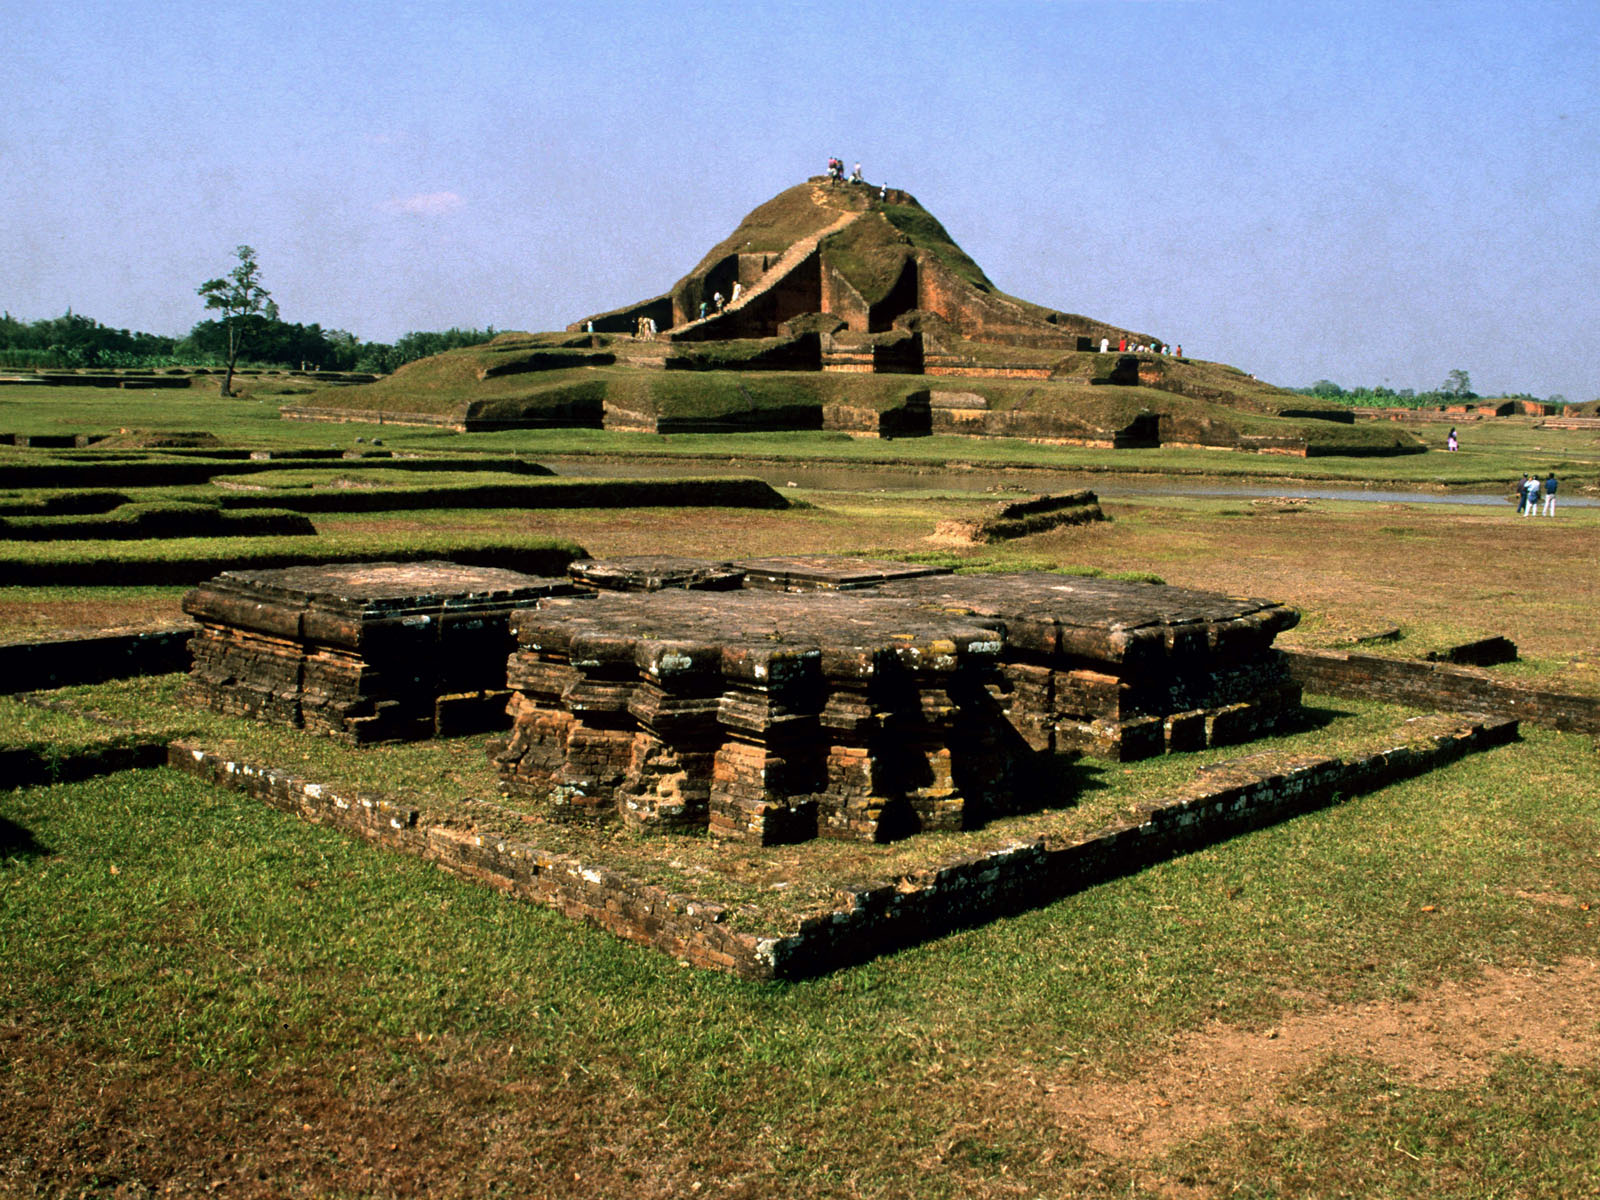 ruins_of_the_buddhist_vihara_at_paharpur__bangladesh__5_.jpg